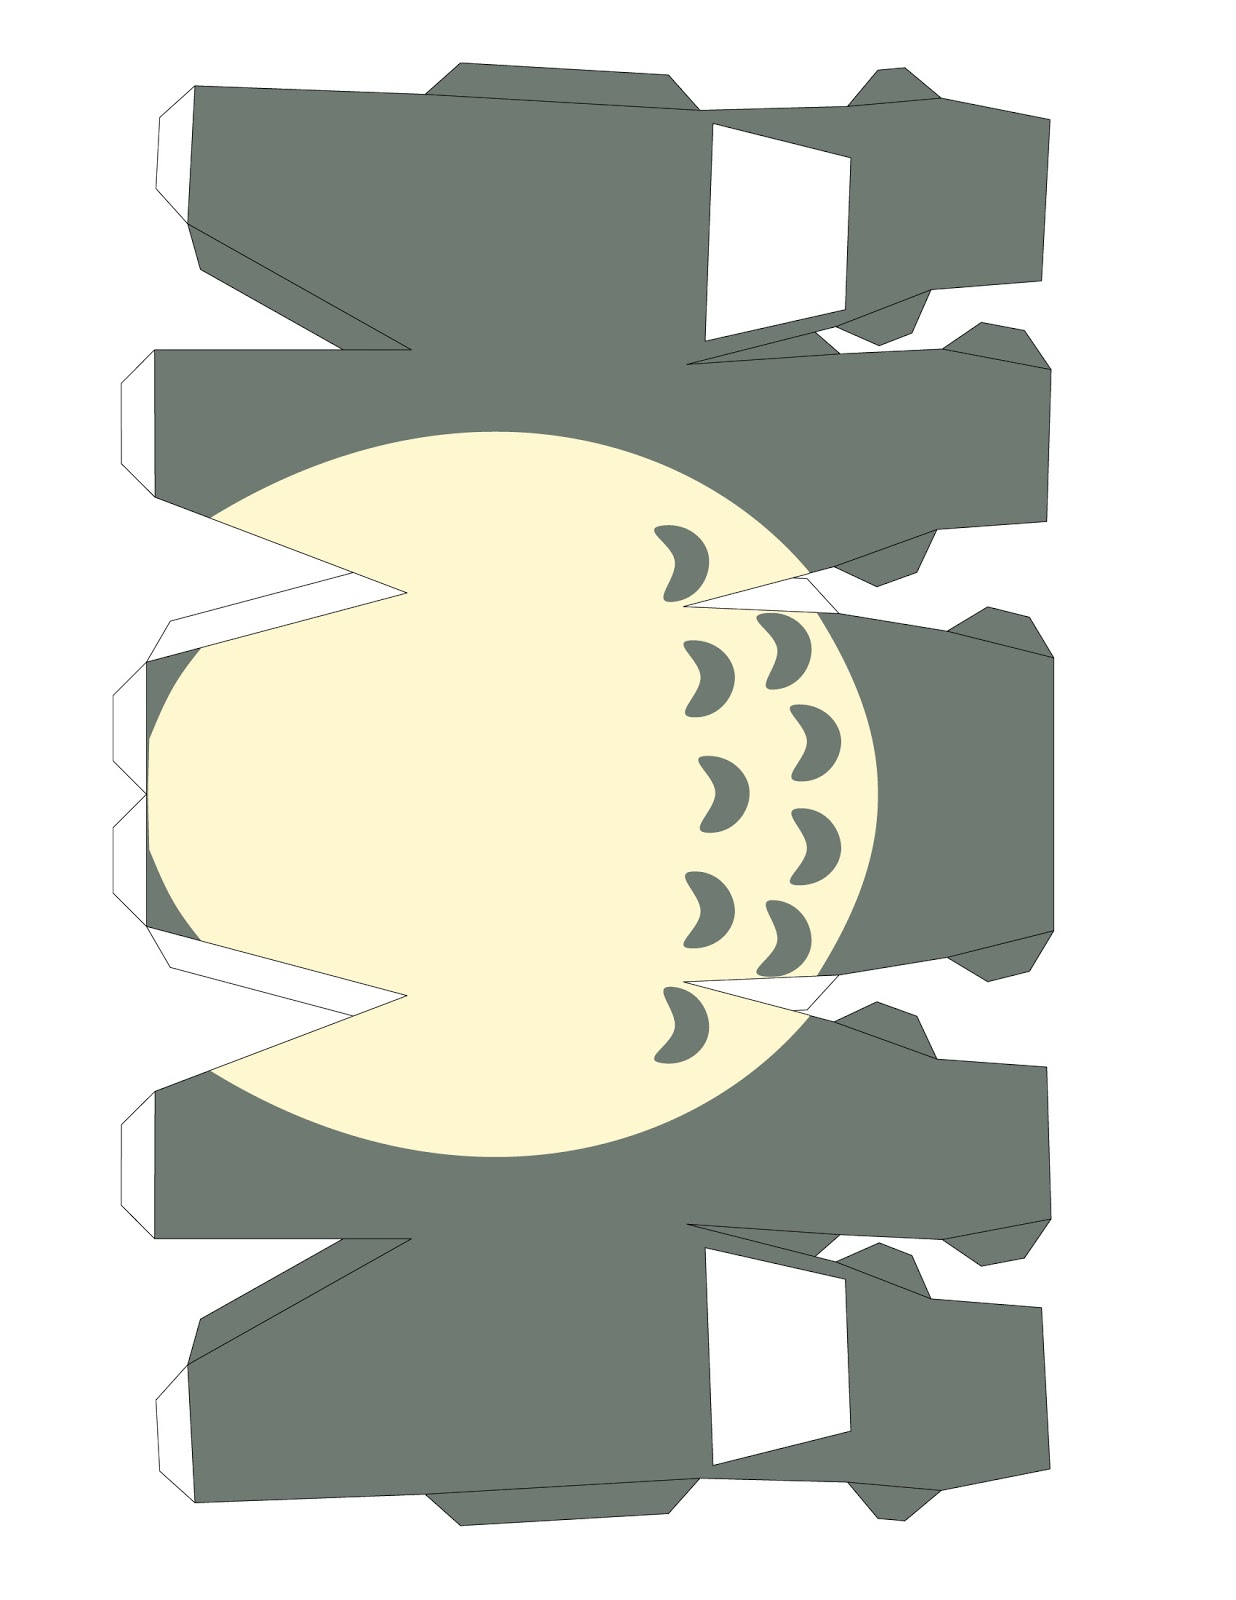 Varietats totoro papercraft template for Cute papercraft templates